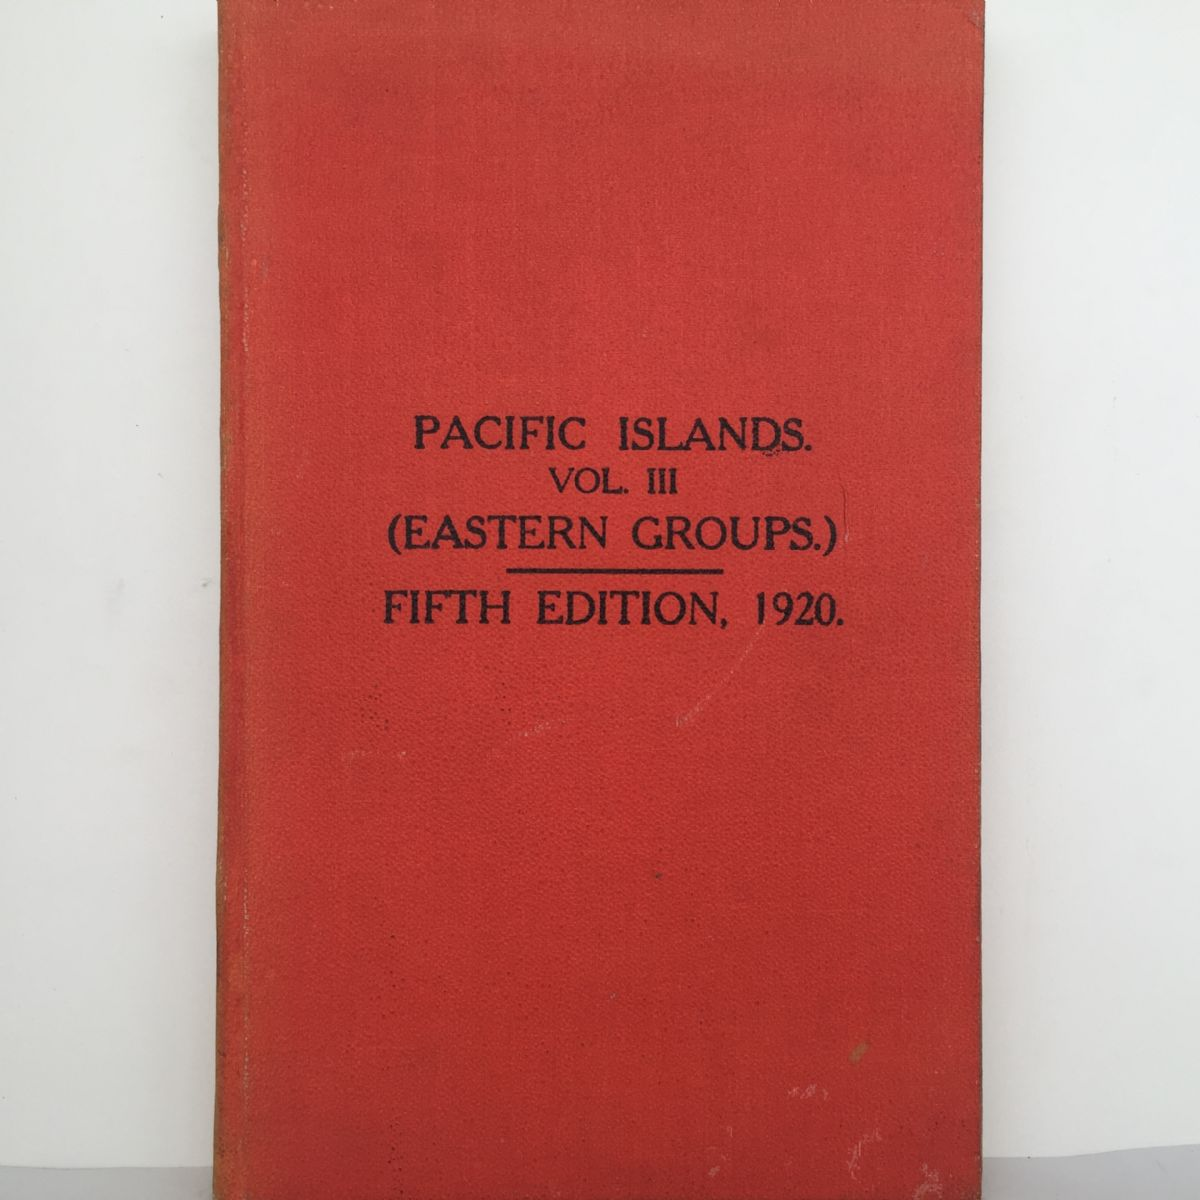 Pacific Islands Pilot Vol III (Eastern Groups) Fifth Edition 1920